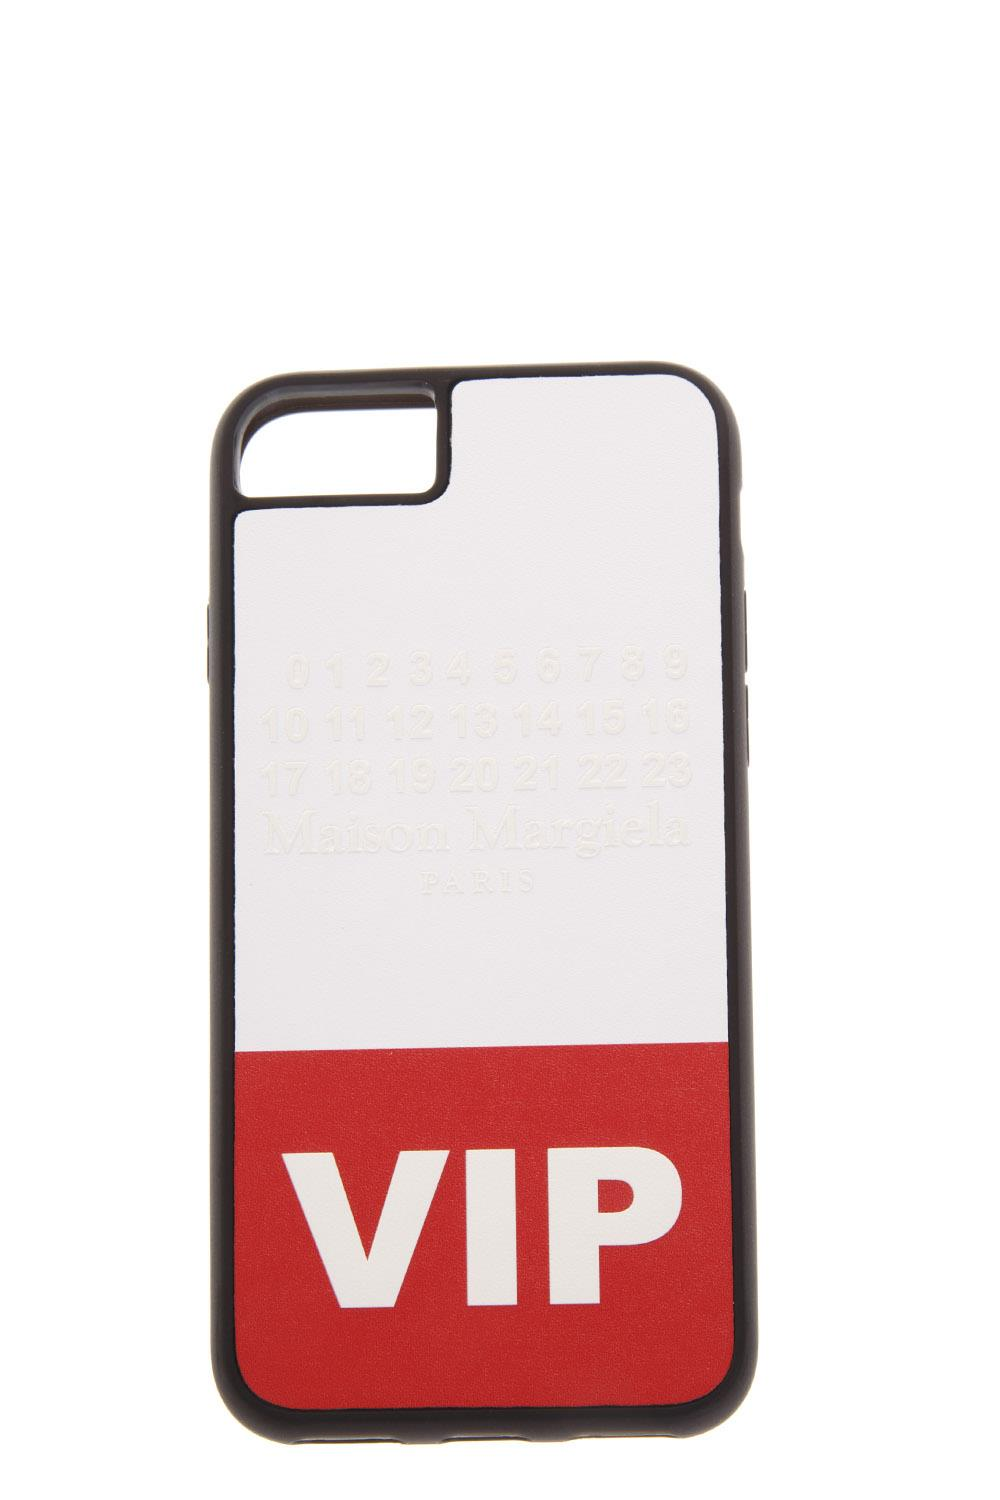 ef939981adf115 VIP COVER FOR IPHONE 8 FW 2018 - MAISON MARGIELA - Boutique Galiano